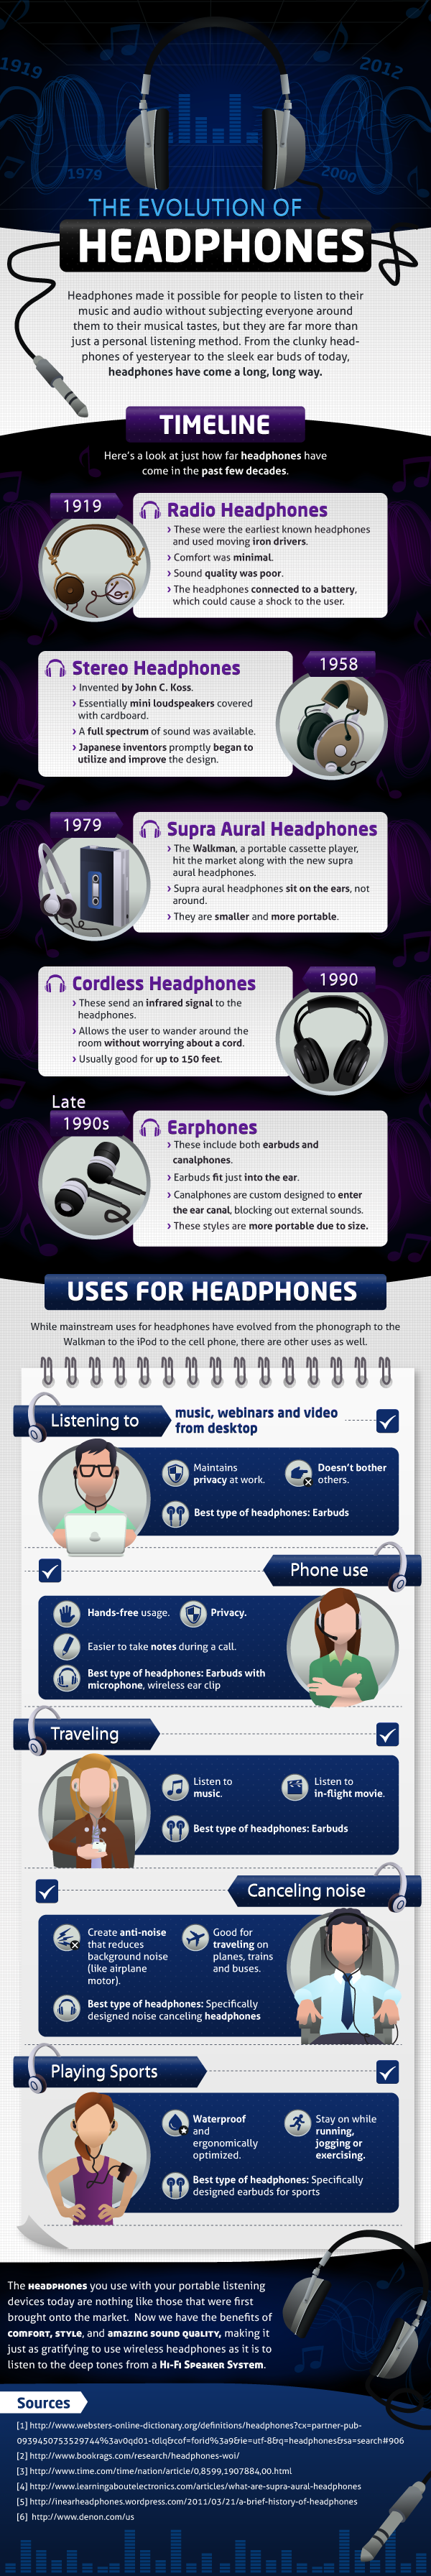 Infographic - Evolution Of Headphones